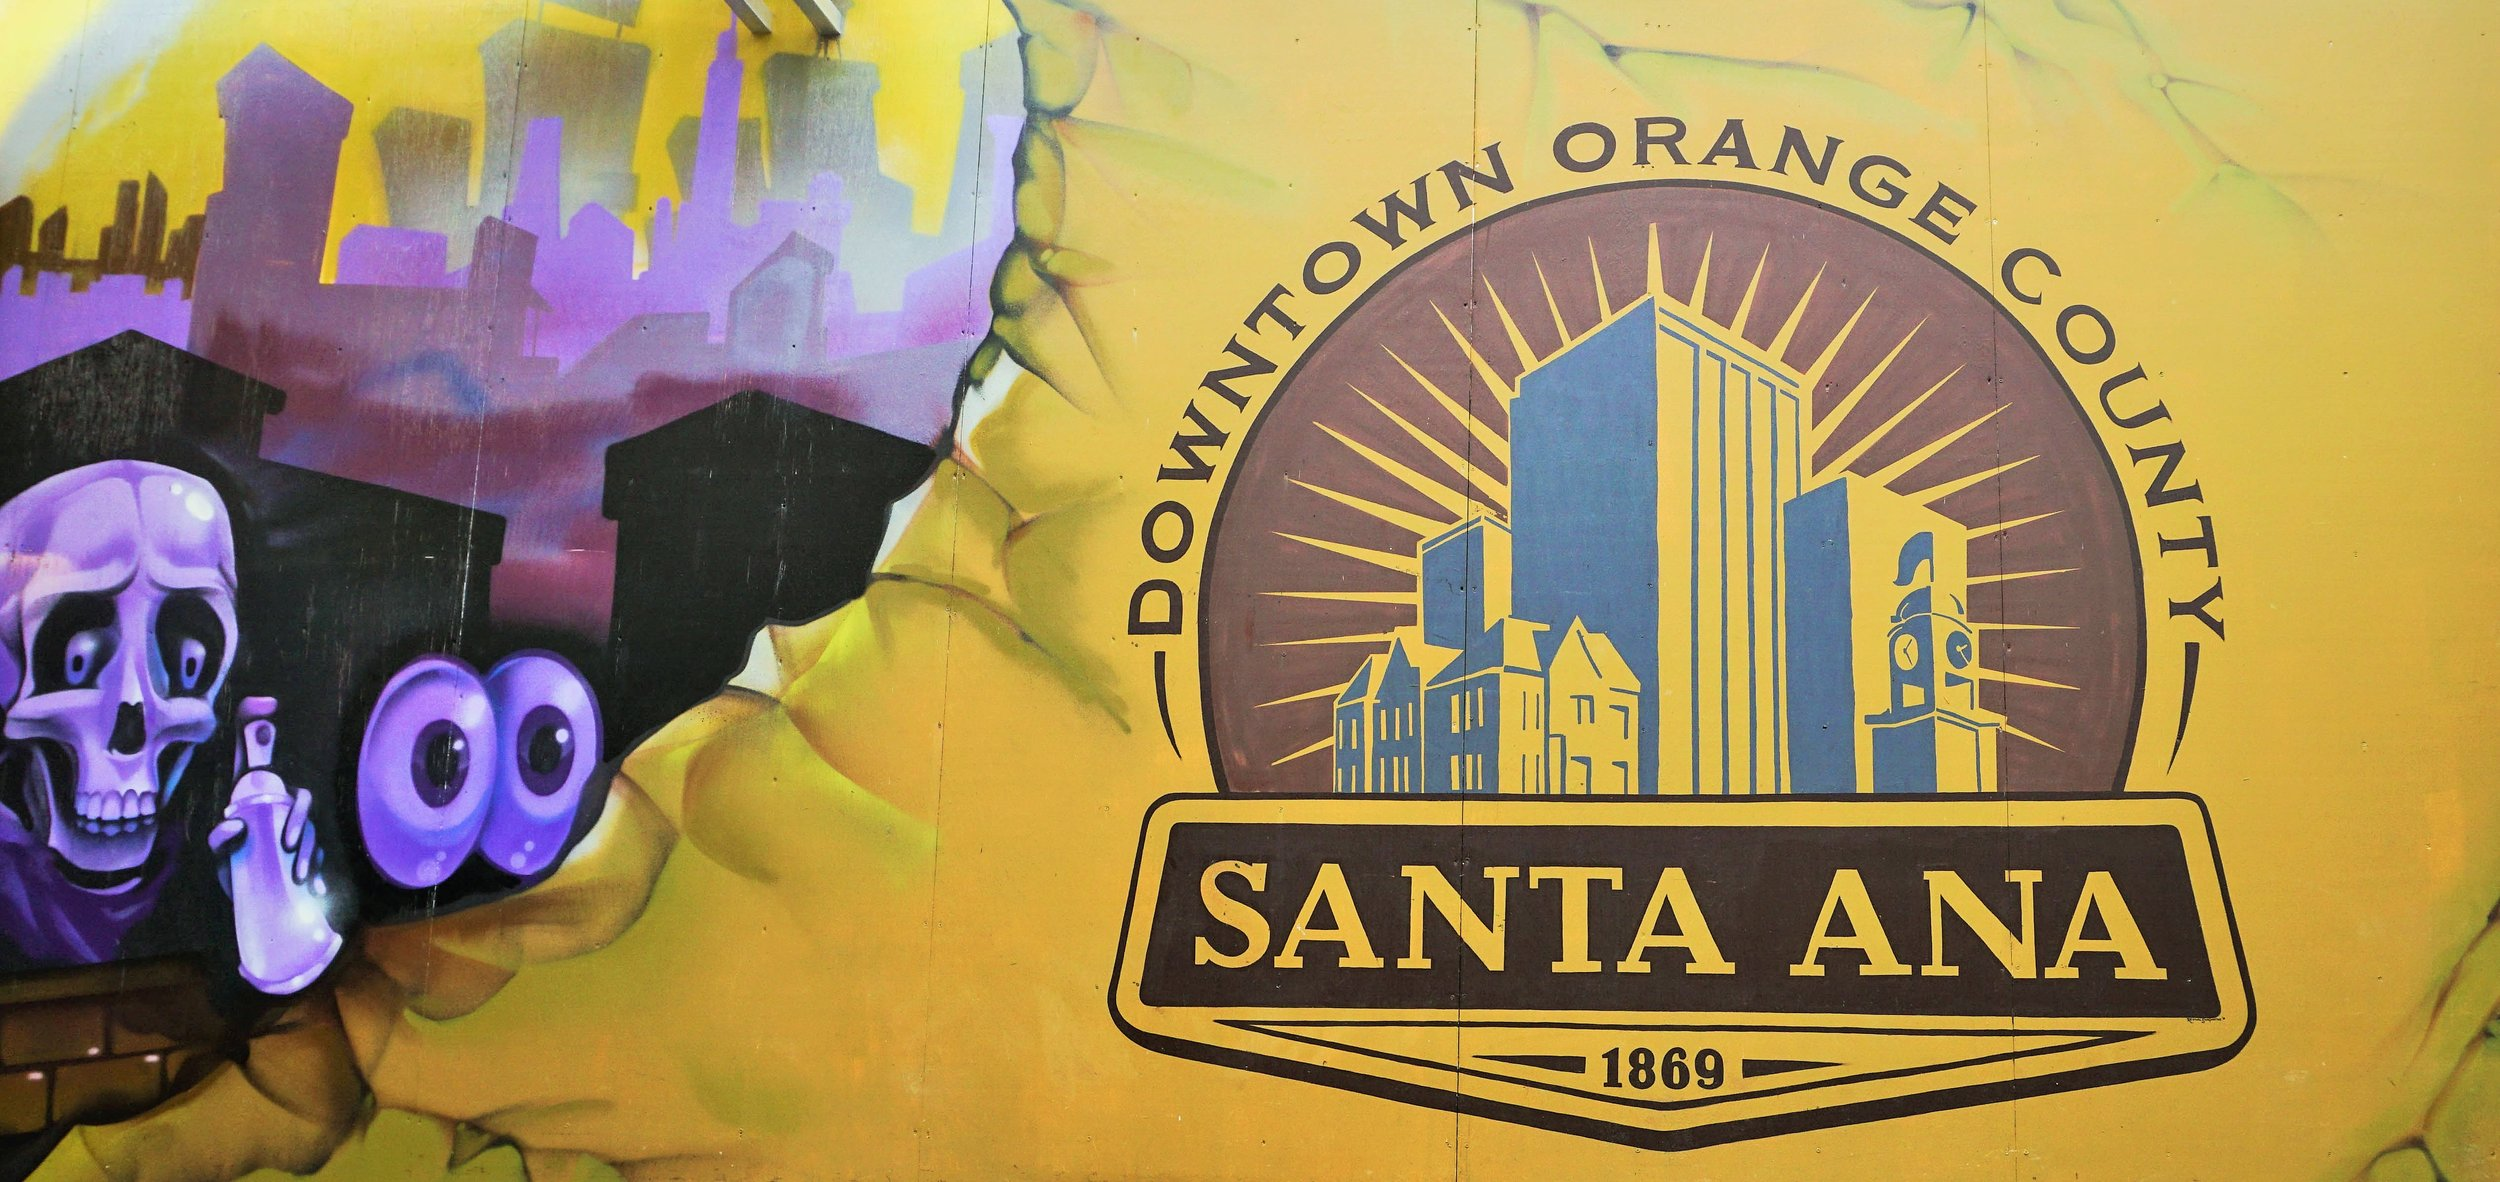 Uncover Santa Ana - About Us